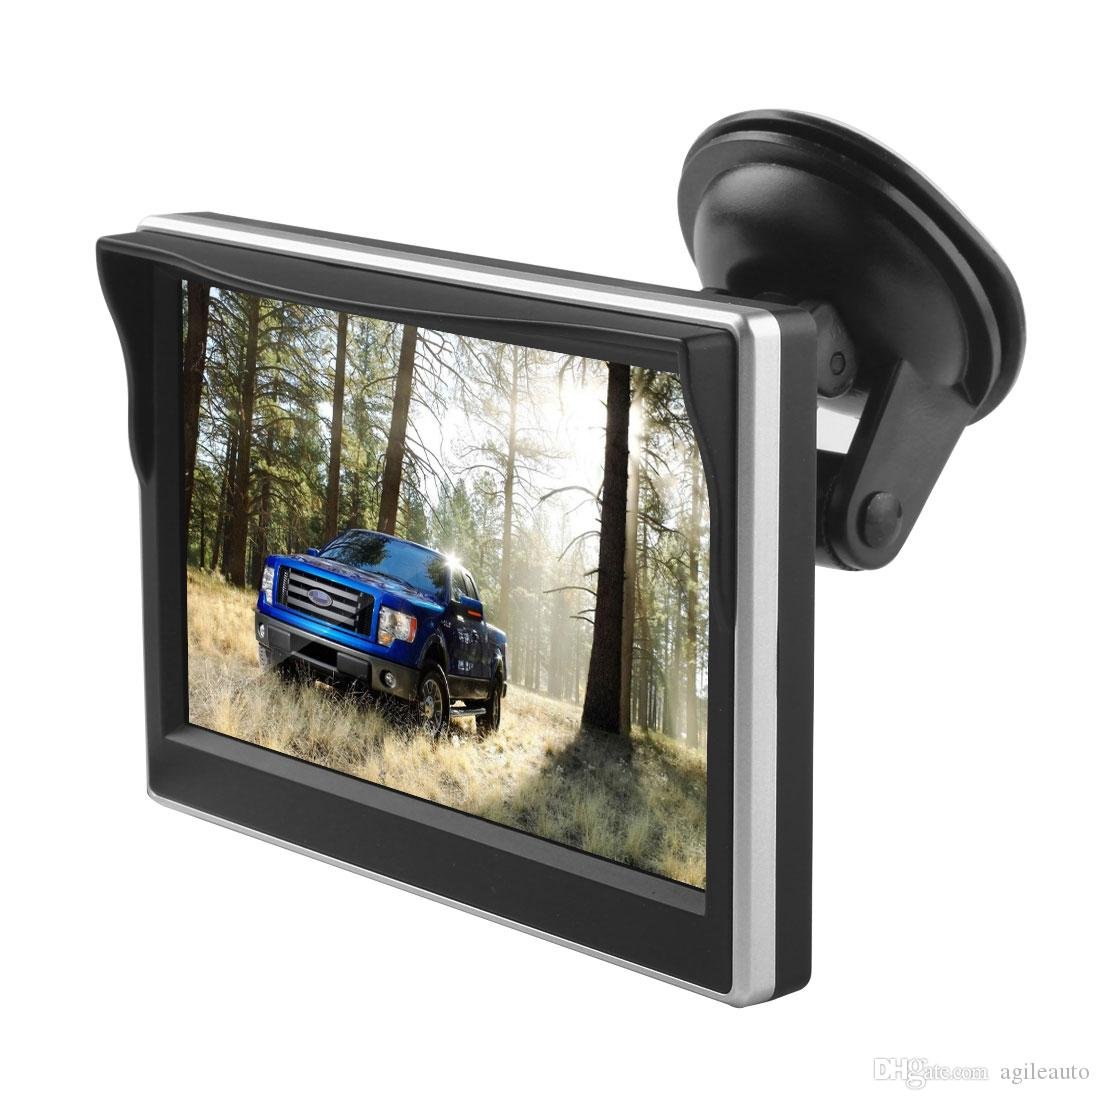 5 Inch TFT LCD Screen 480 x 272 HD Digital Color Car Rear View Monitor Support VCD/DVD/GPS/Camera CMO_396